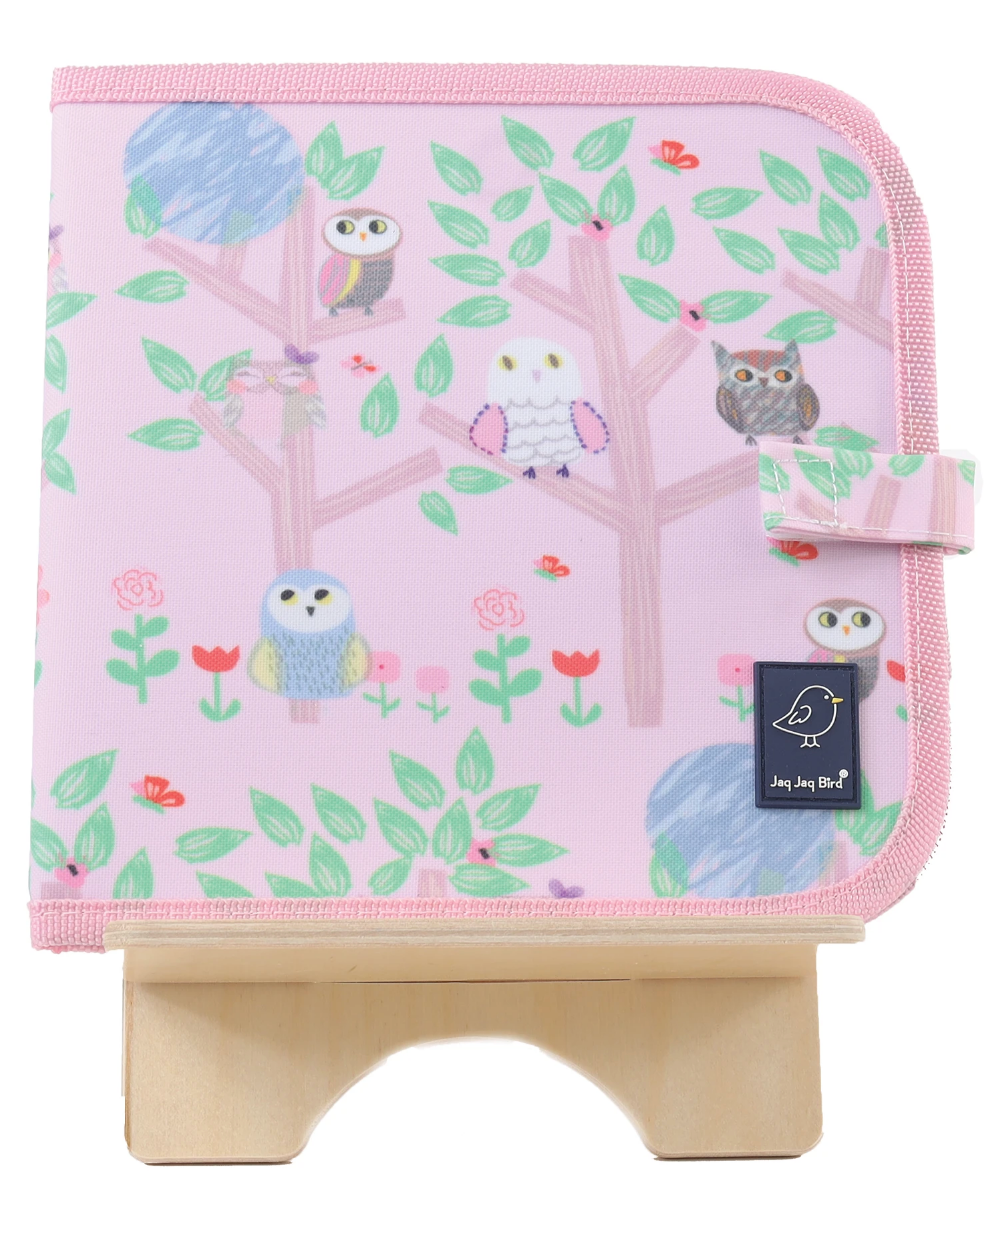 Owls on Trees Doodle It & Go Erasable Book